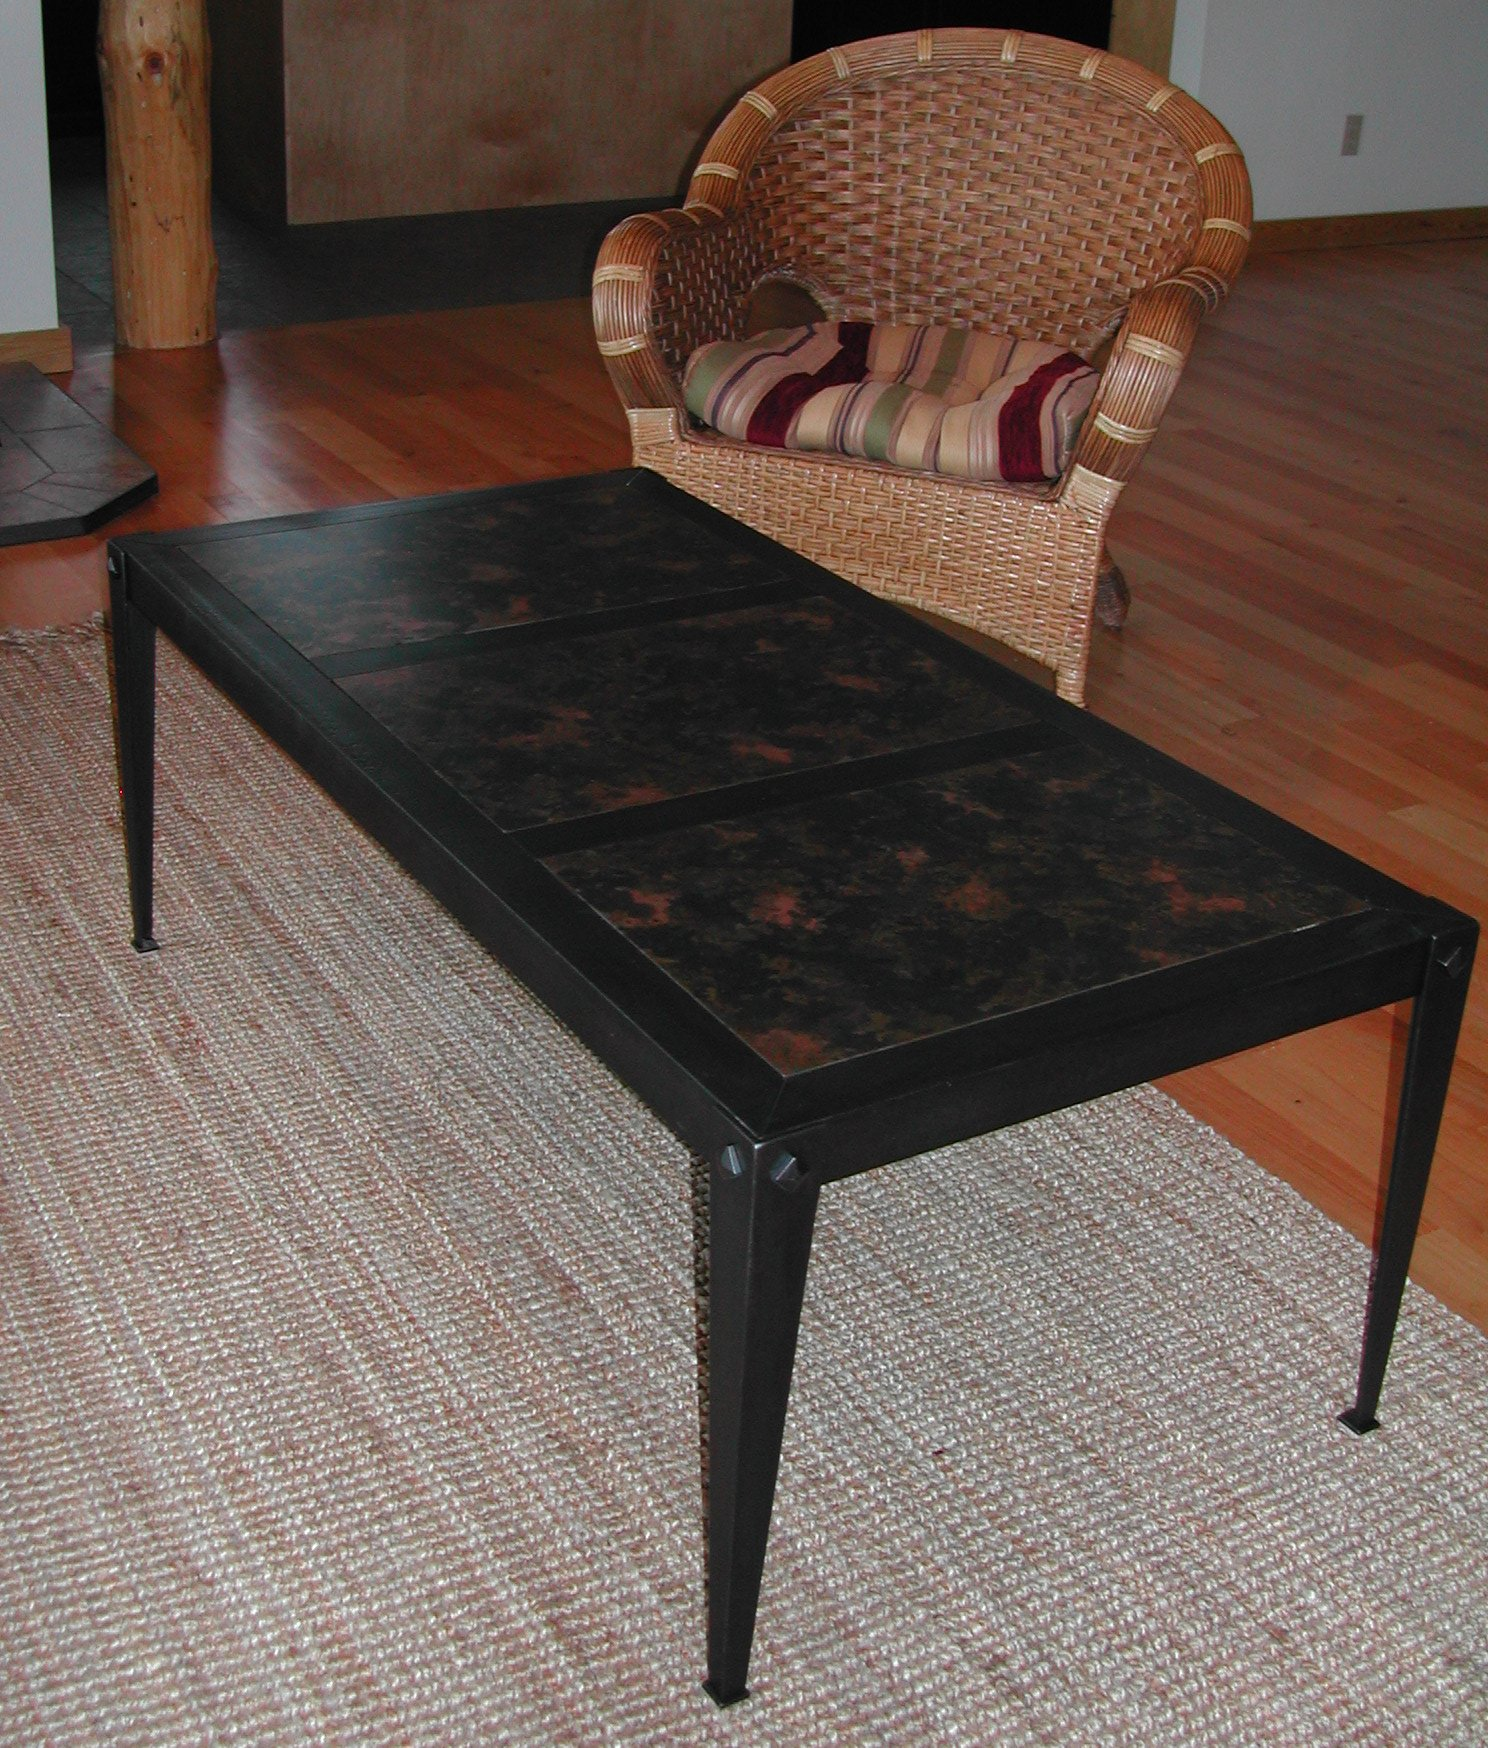 Coffe Table Patina top.jpg